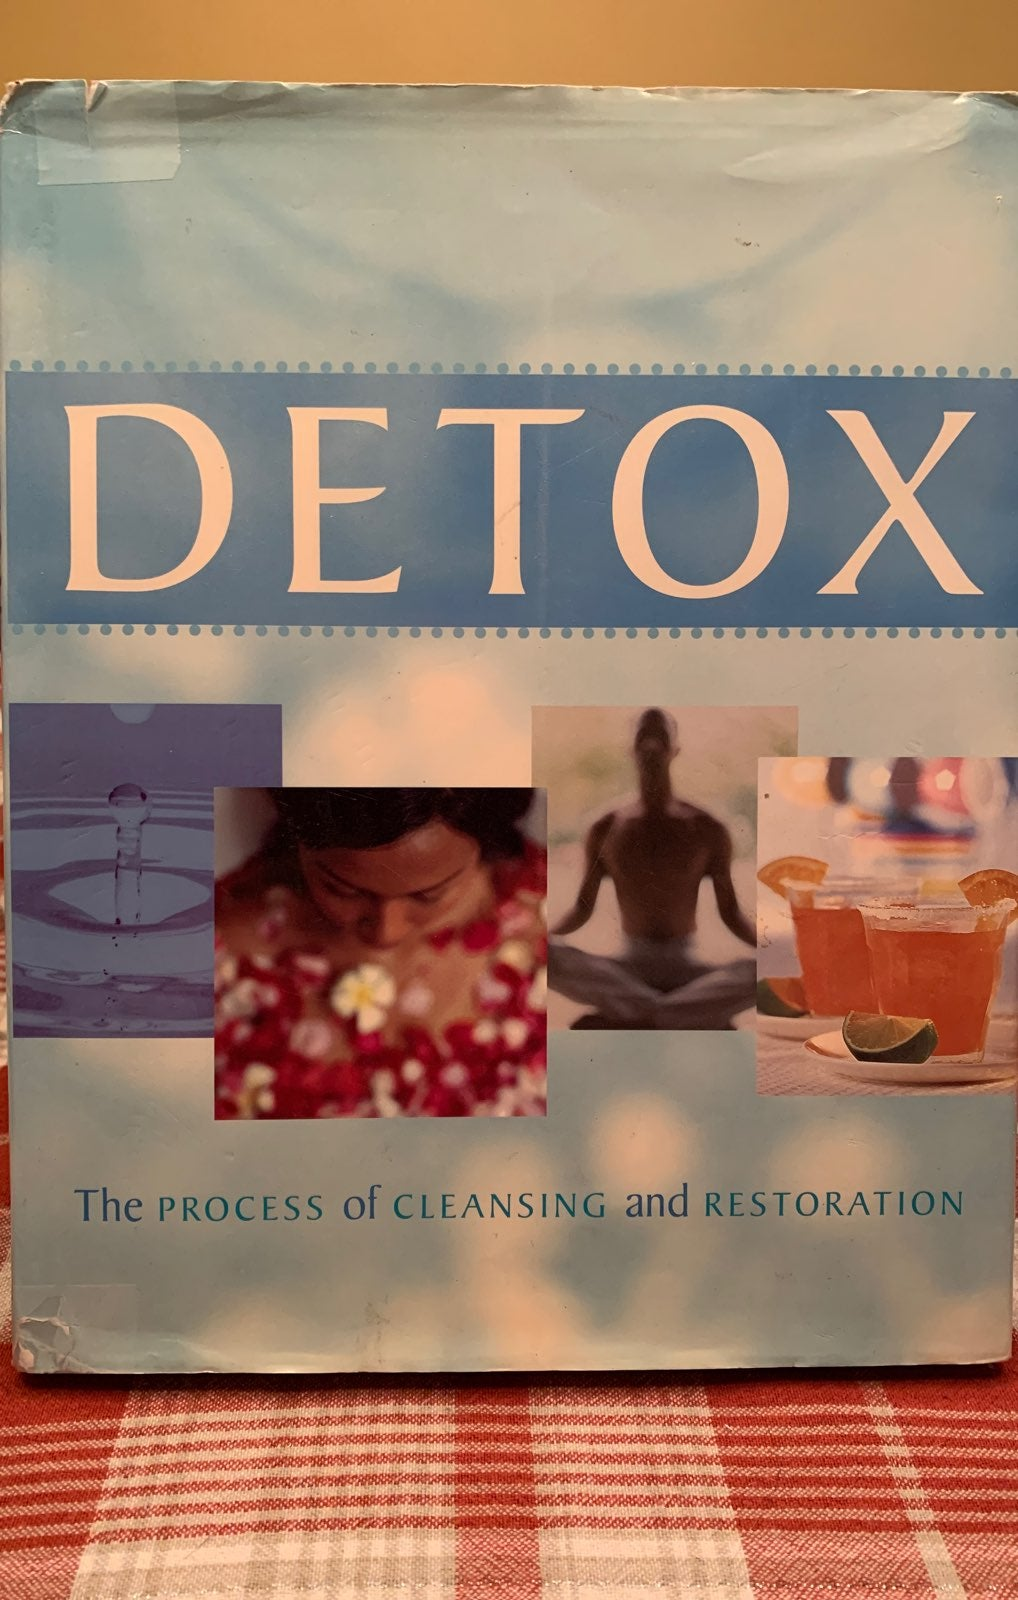 DETOX BODY CLEANSING AND RESTORATION